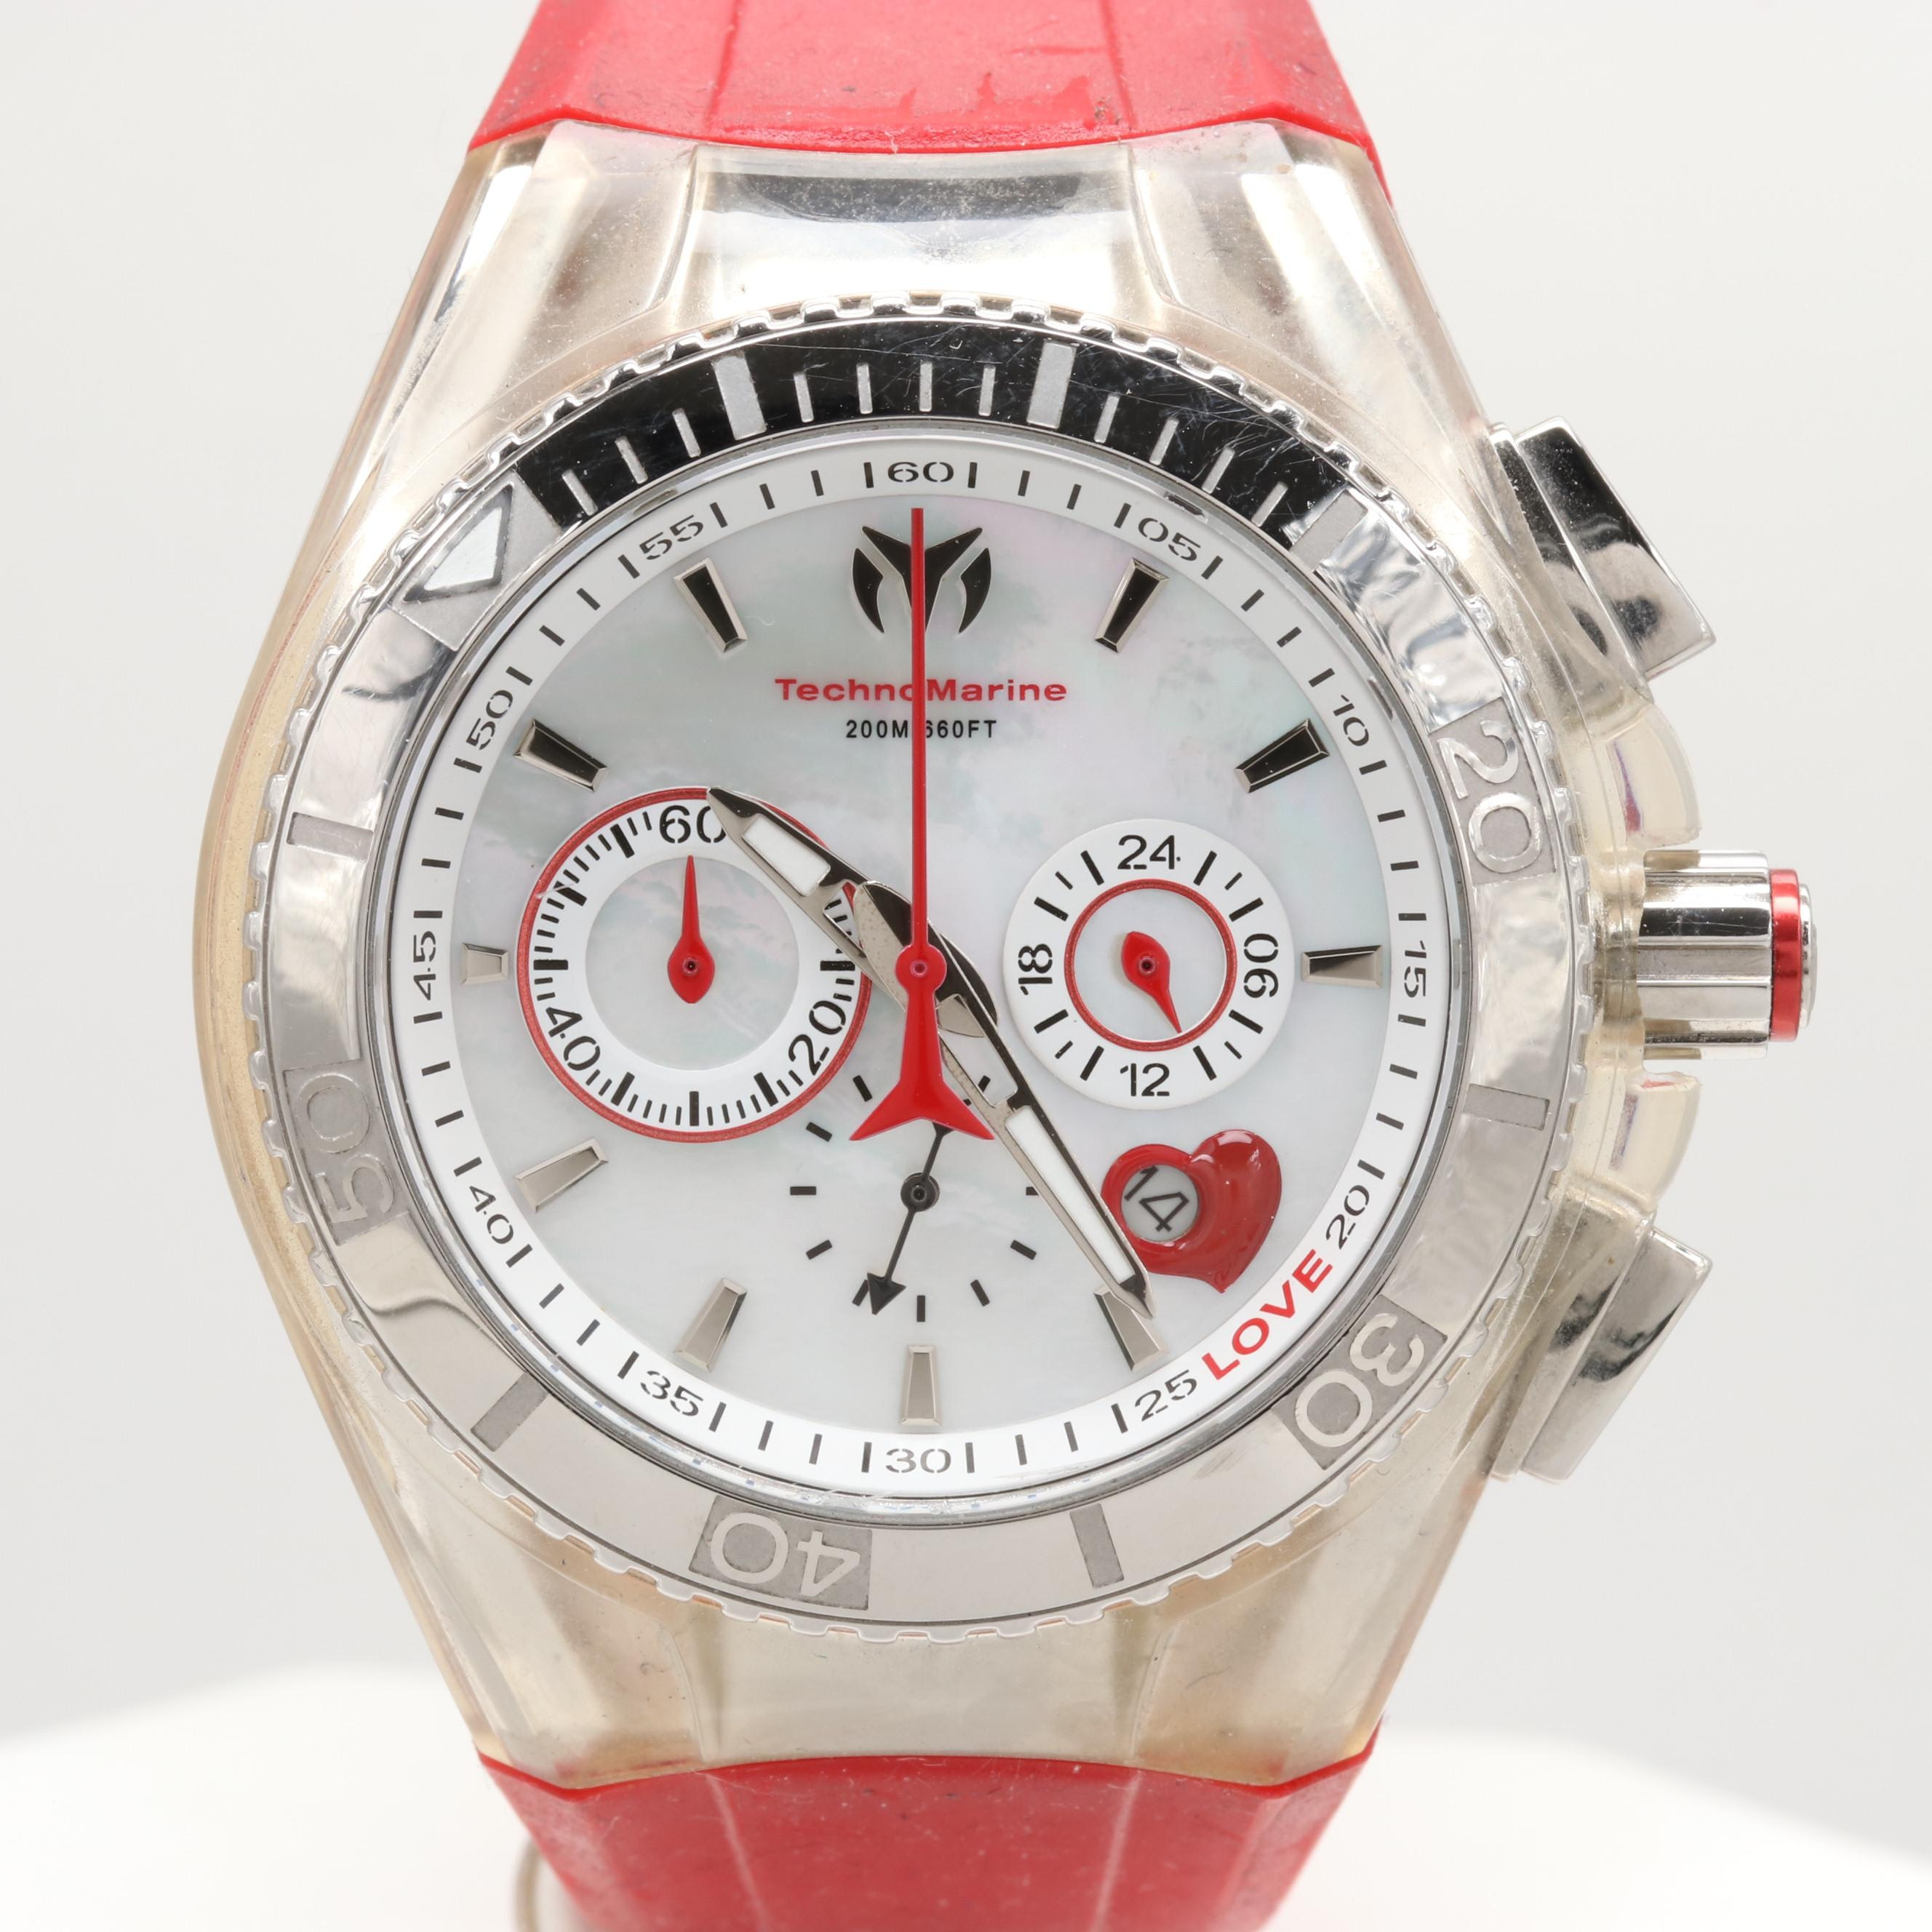 Technomarine Stainless Steel Cruise Valentine Quartz Chronograph Wristwatch